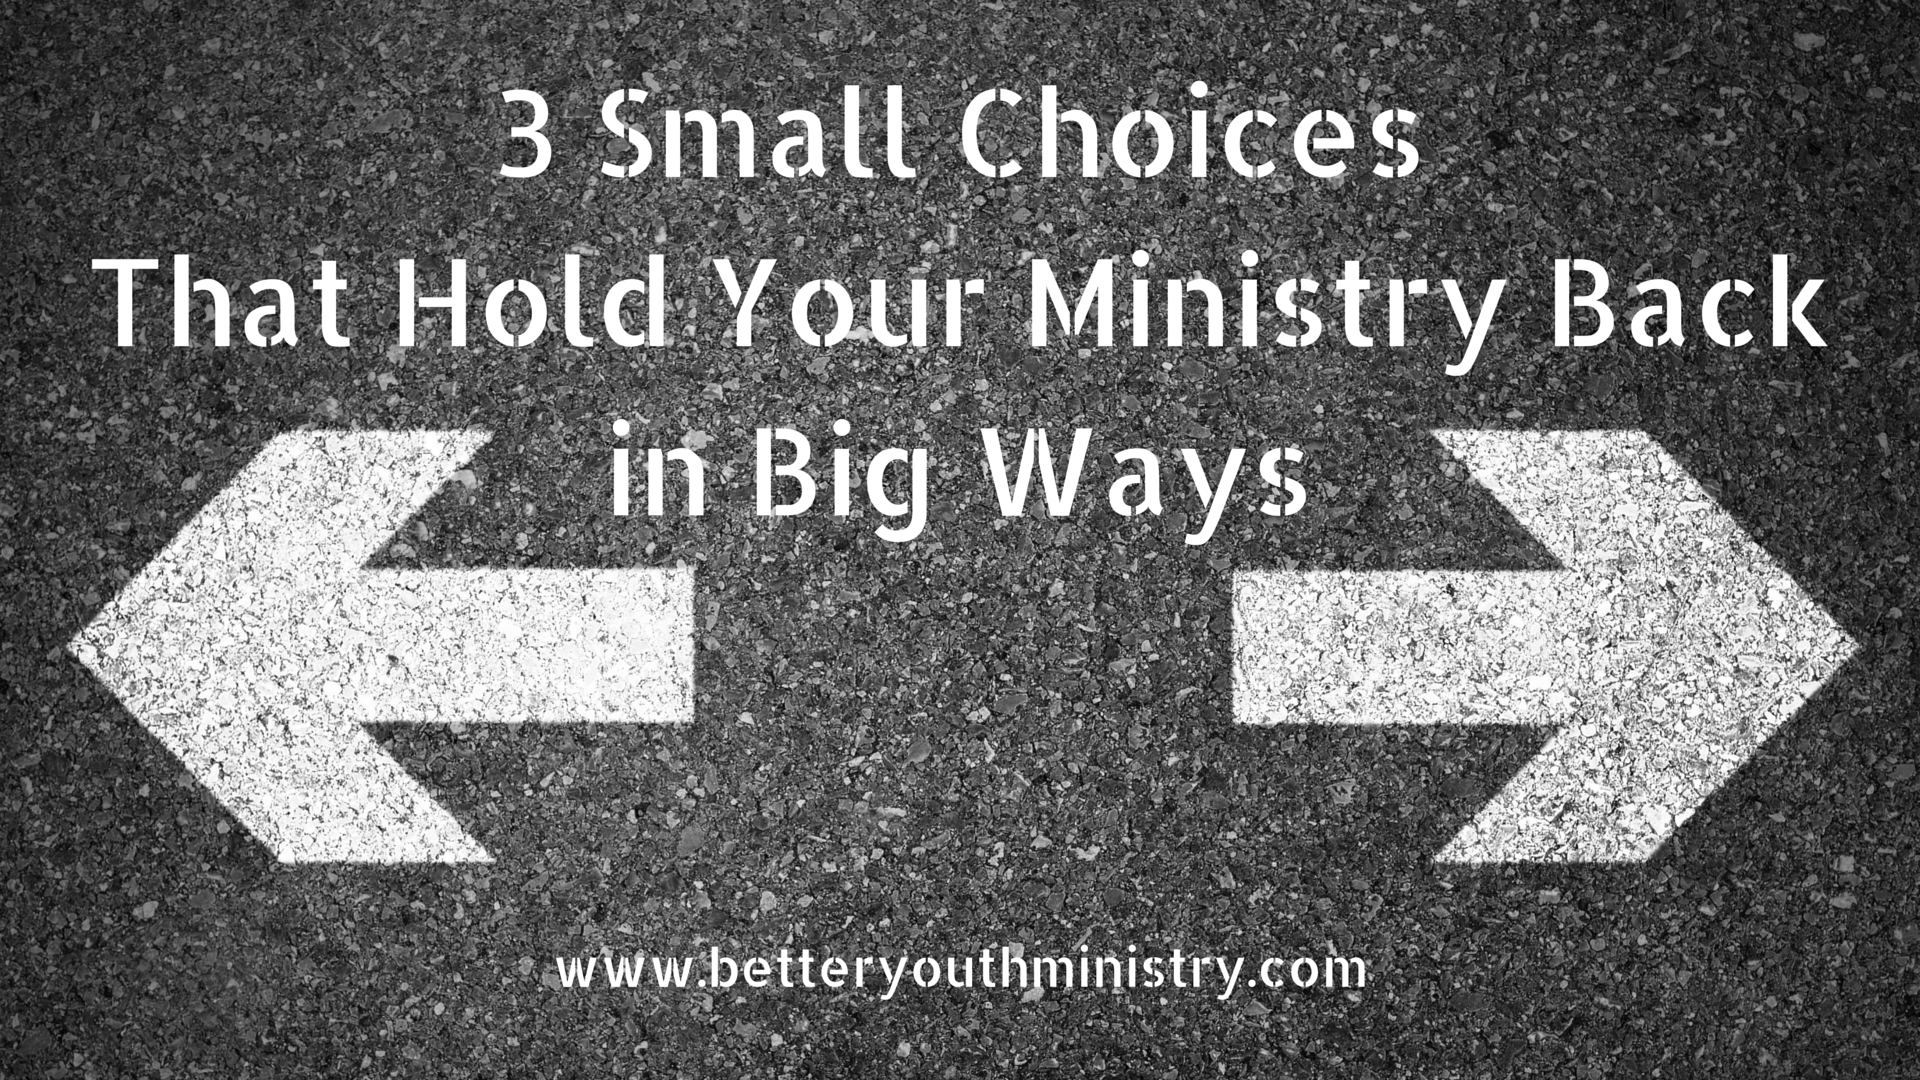 3 Small Choices that Hold Your Ministry Back in Big Ways